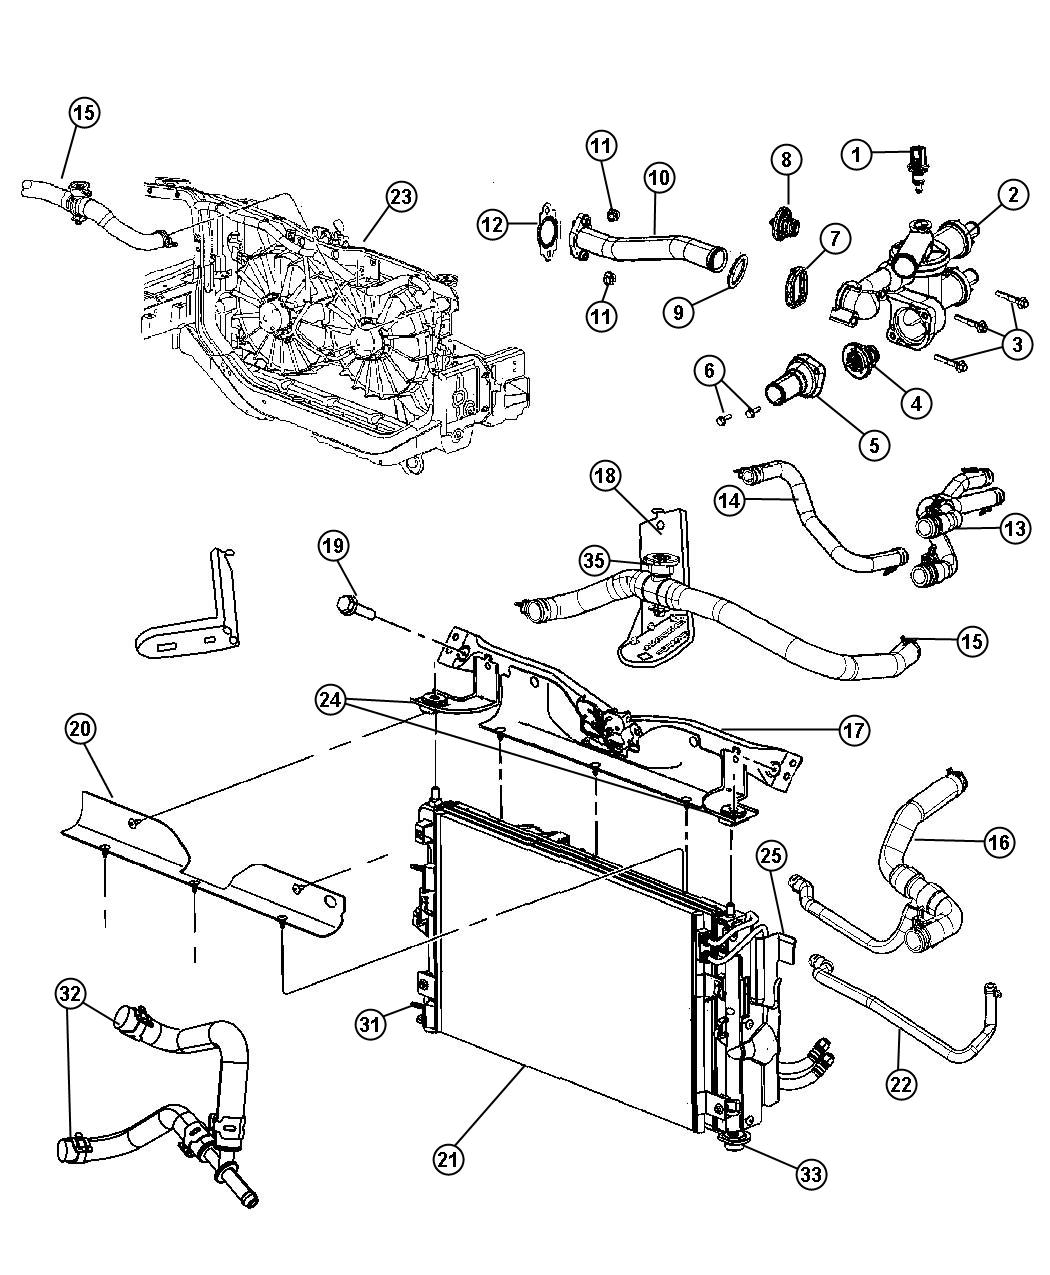 jeep patriot 2 4l engine diagram jeep auto wiring diagram. Black Bedroom Furniture Sets. Home Design Ideas